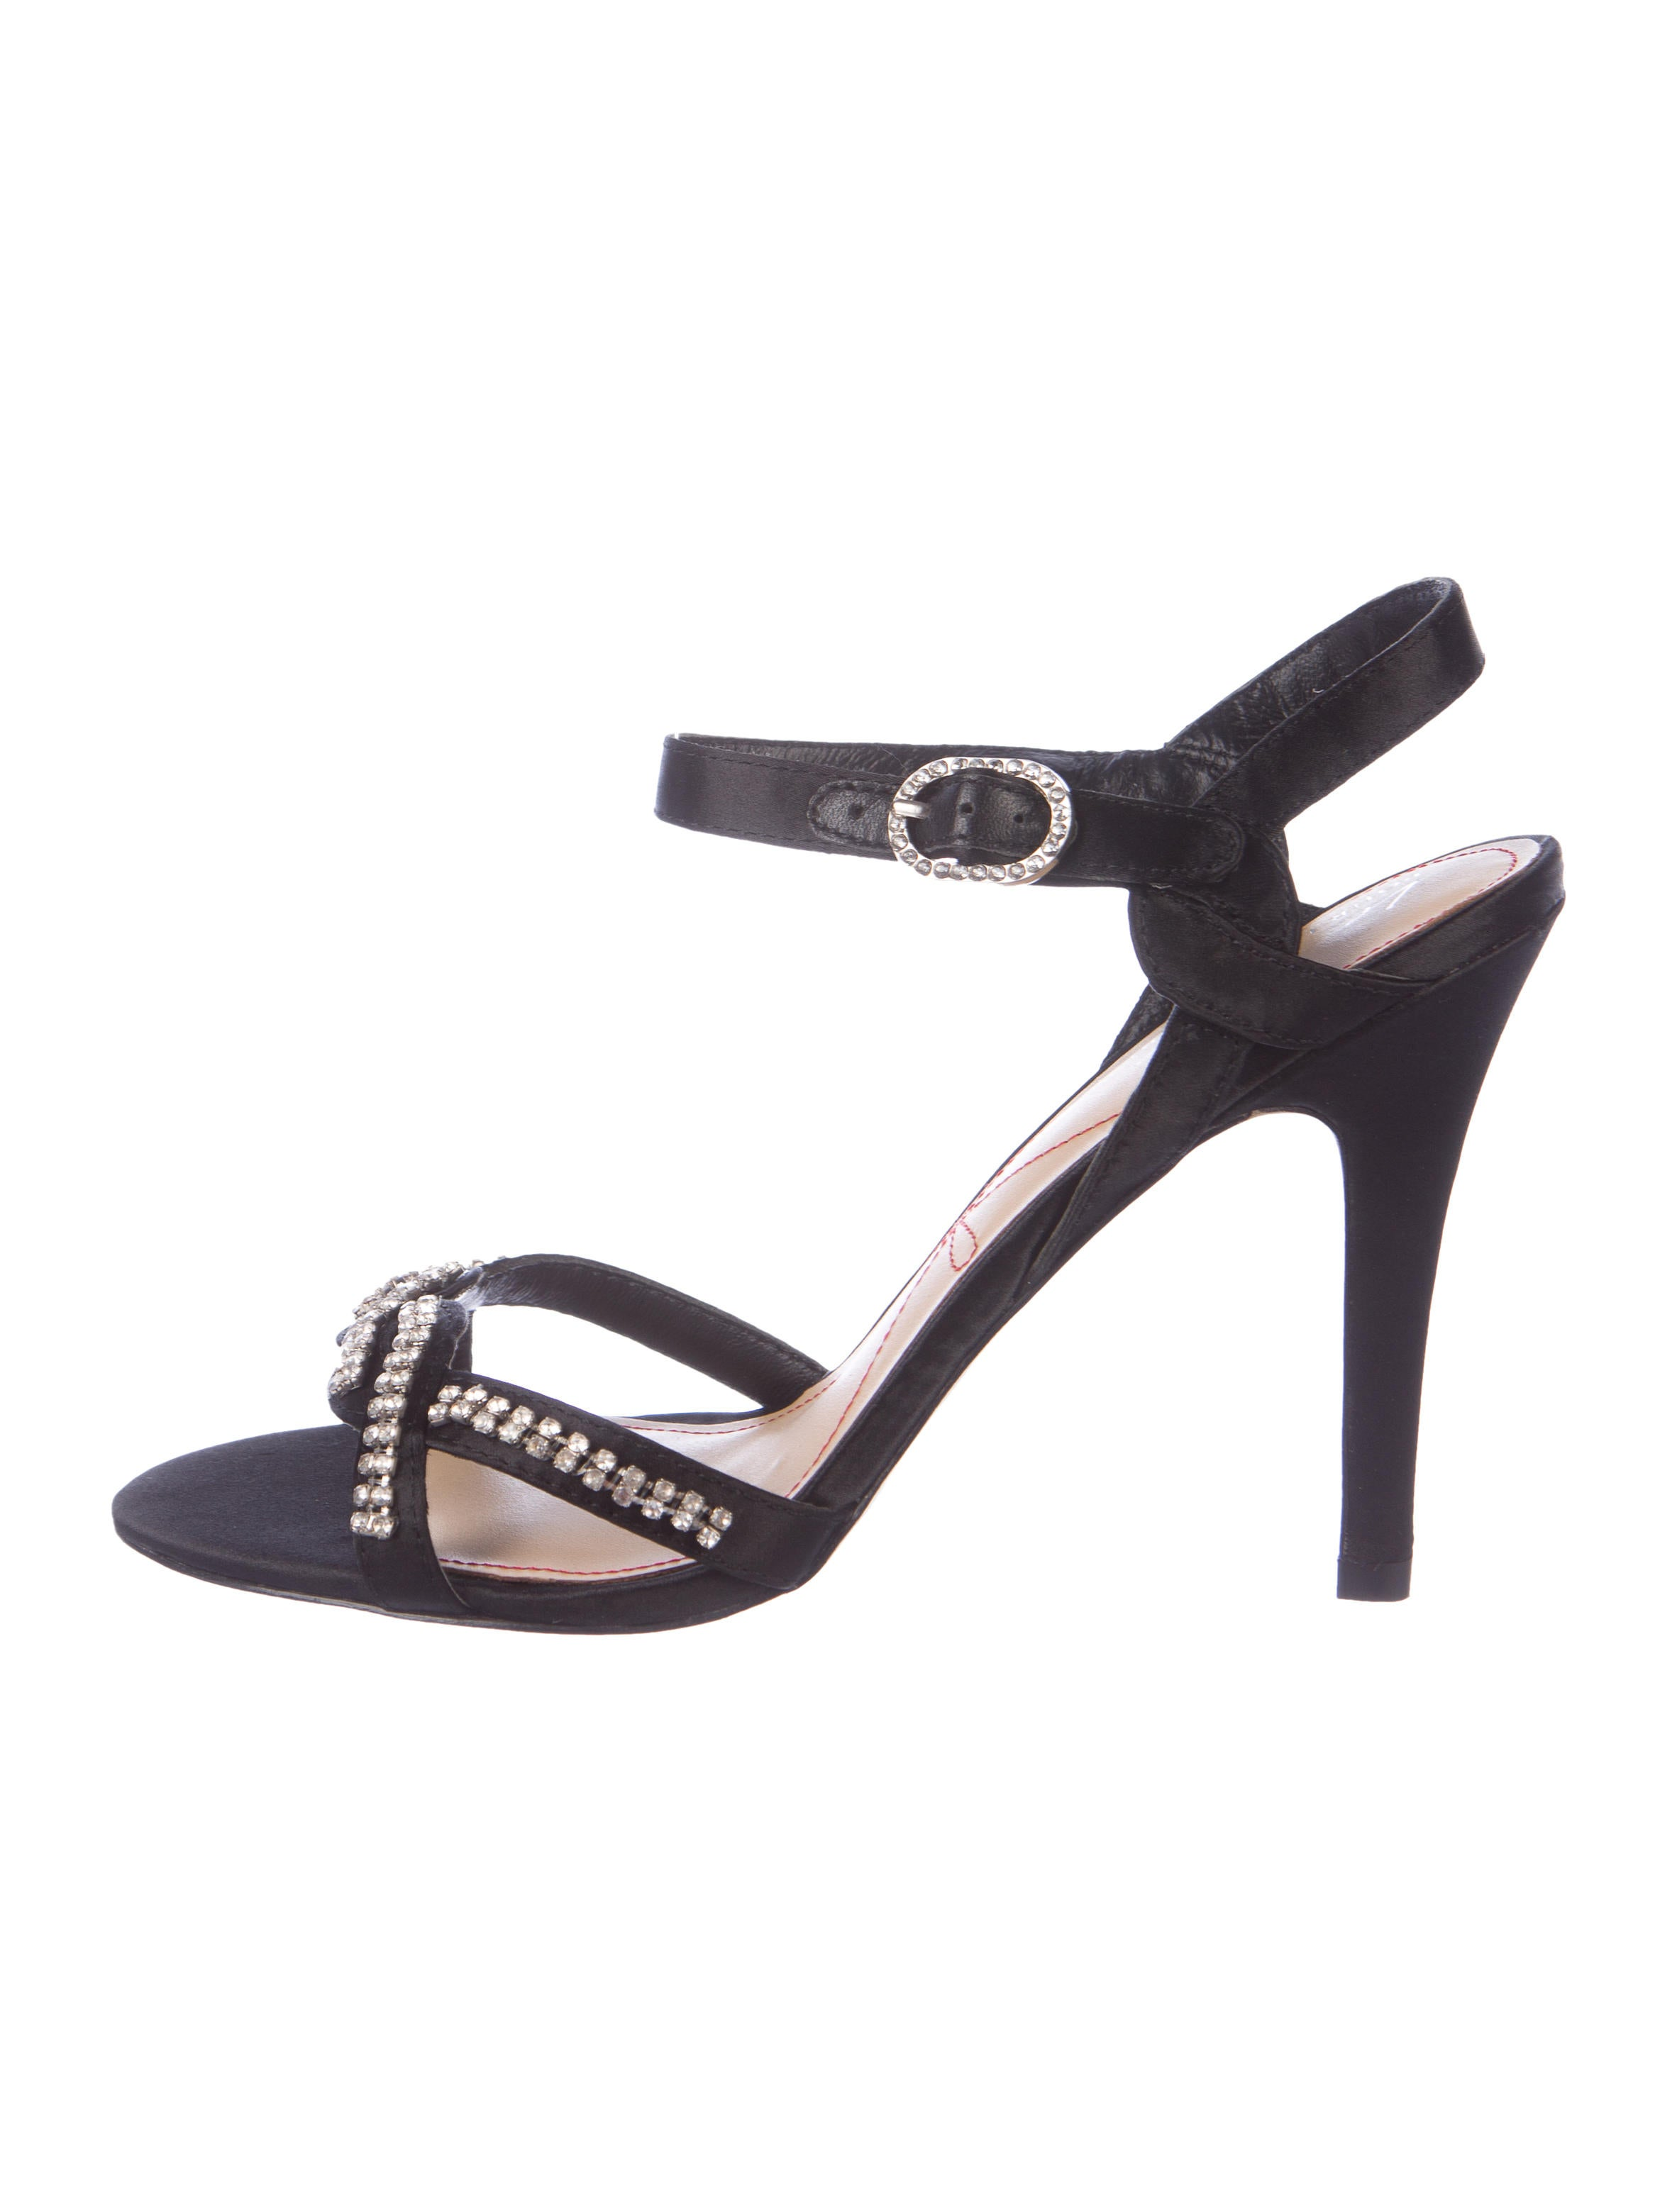 Pour La Victoire Crystal-Embellished Satin Sandals outlet locations online mPyMgHB6c